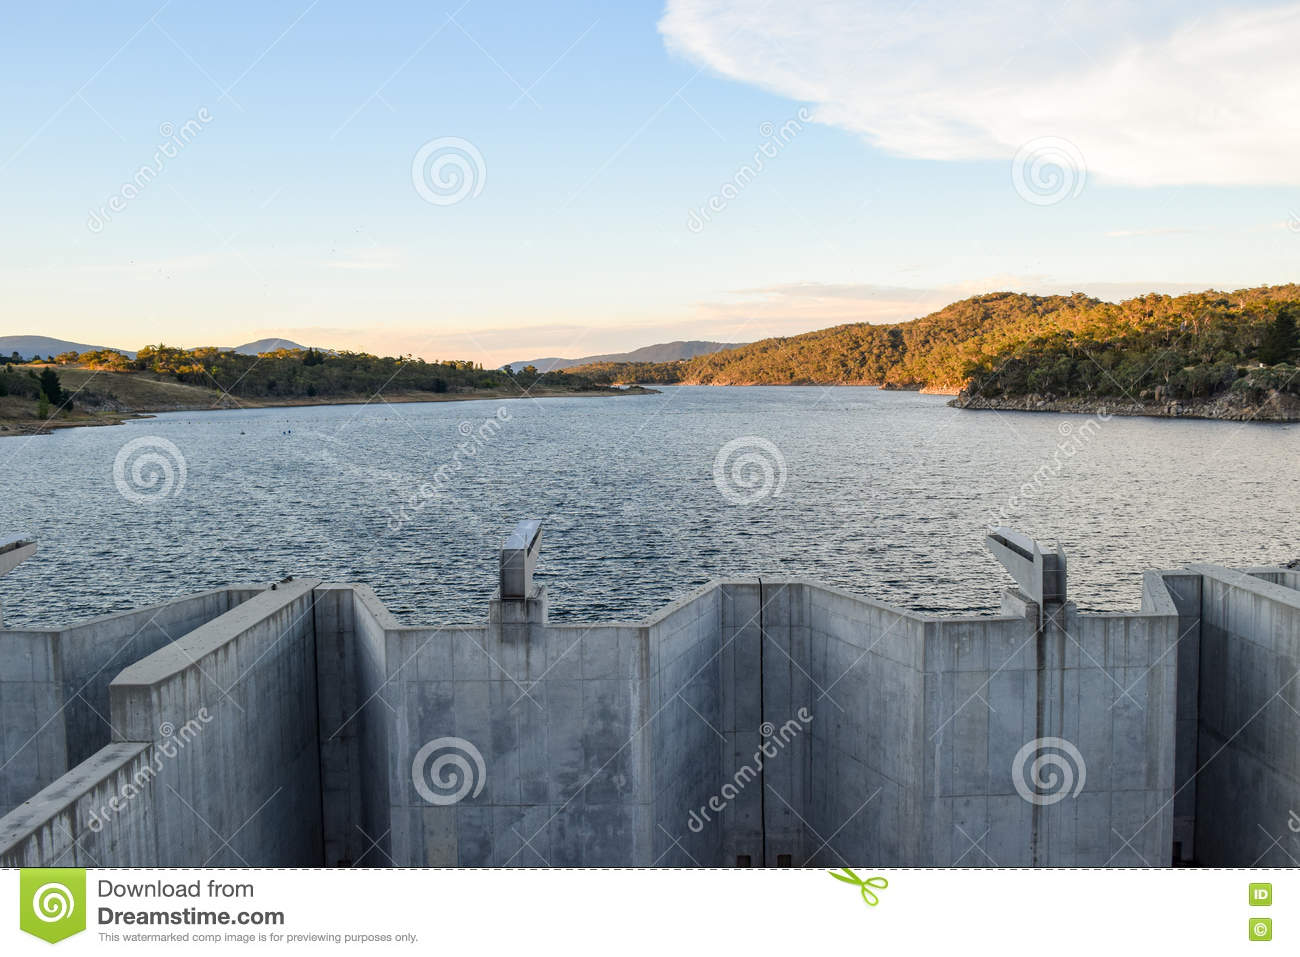 Weighted flood gates on Jindabyne Dam, confining the Snowy River